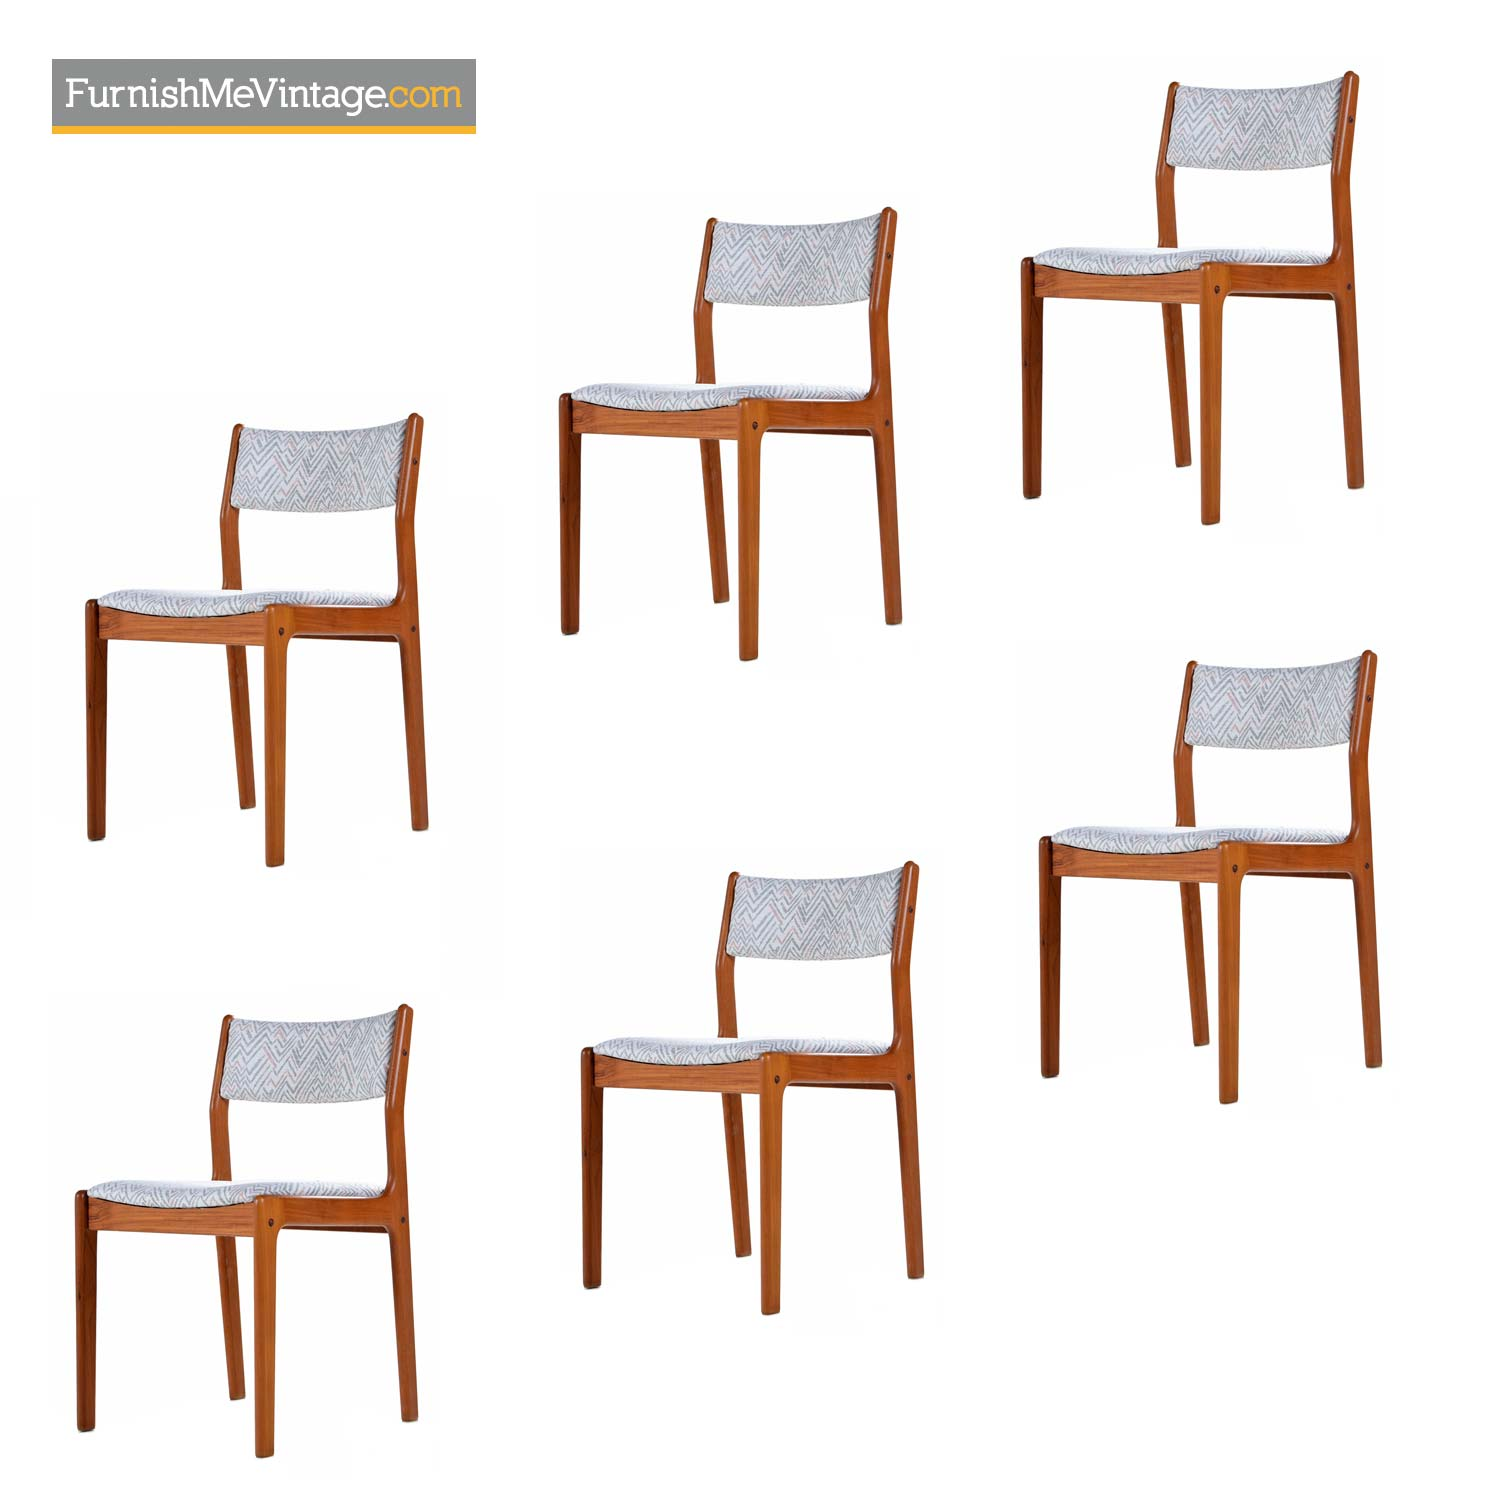 Danish Teak Dining Chairs In Modern White Gray An Pink Fabric